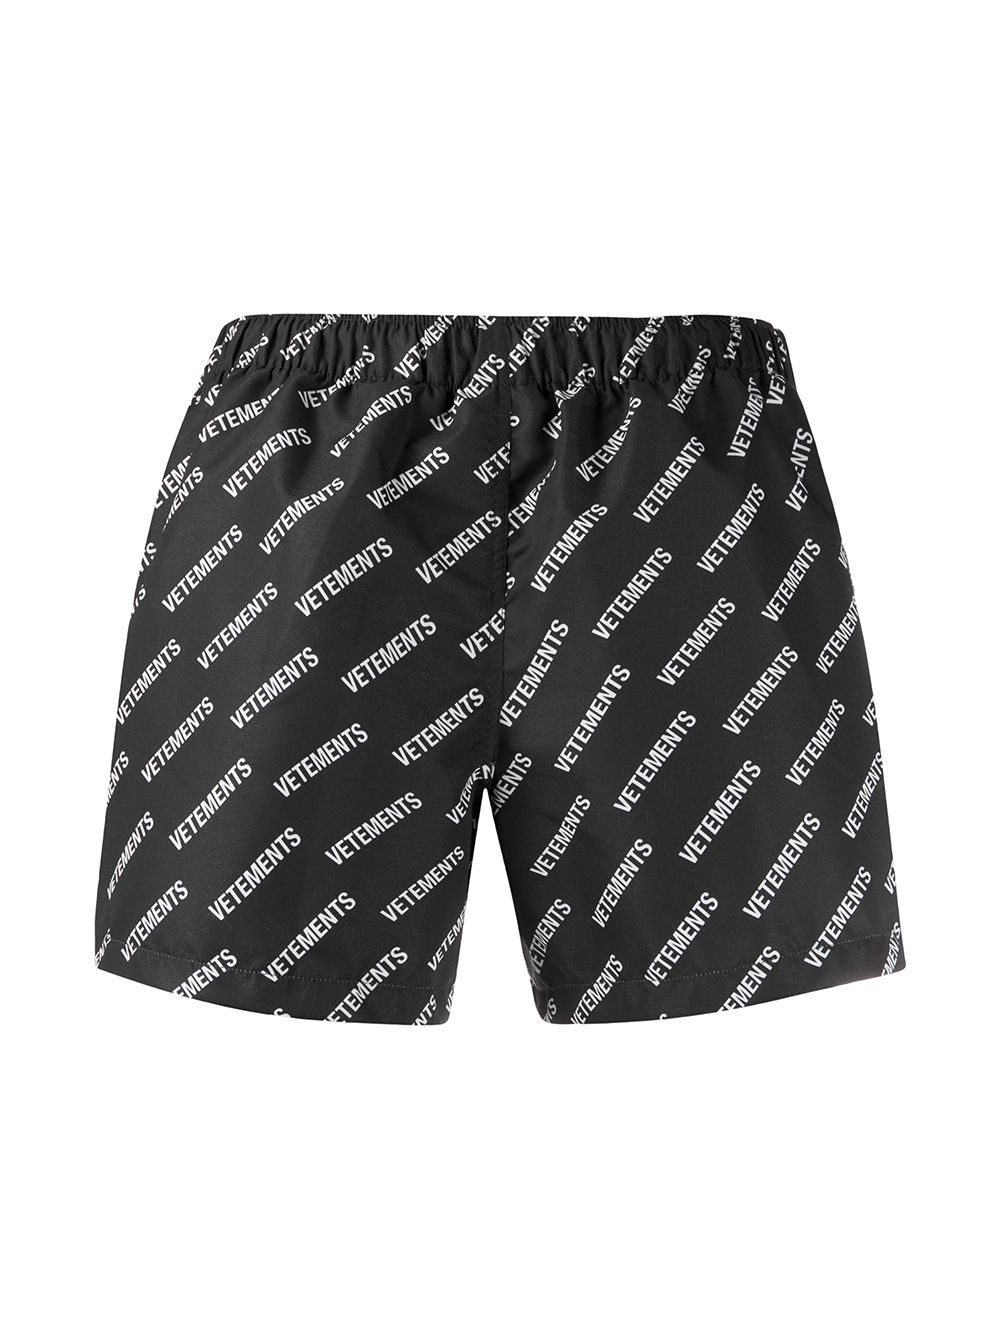 VETEMENTS logo swim shorts black